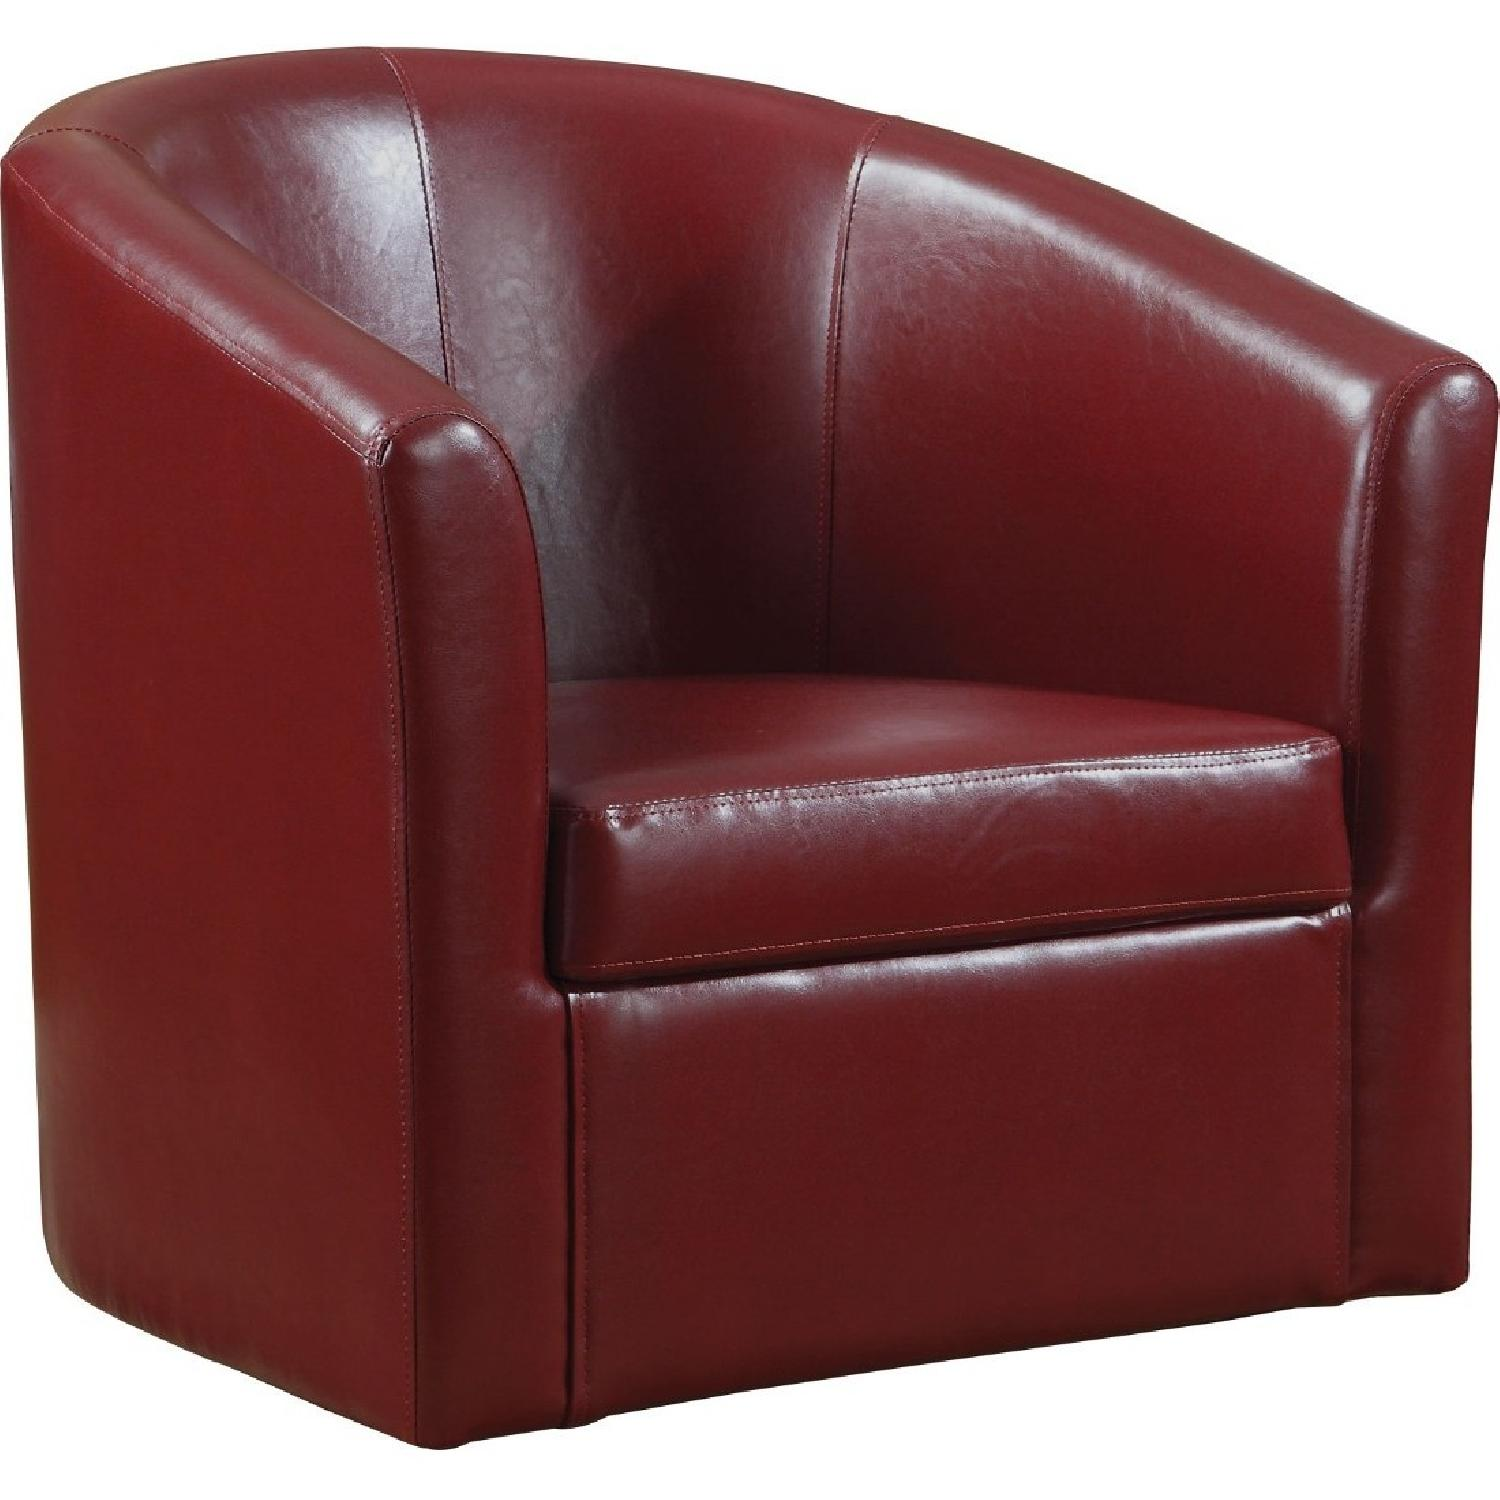 Modern Accent Chair in Red Faux Leather - image-1